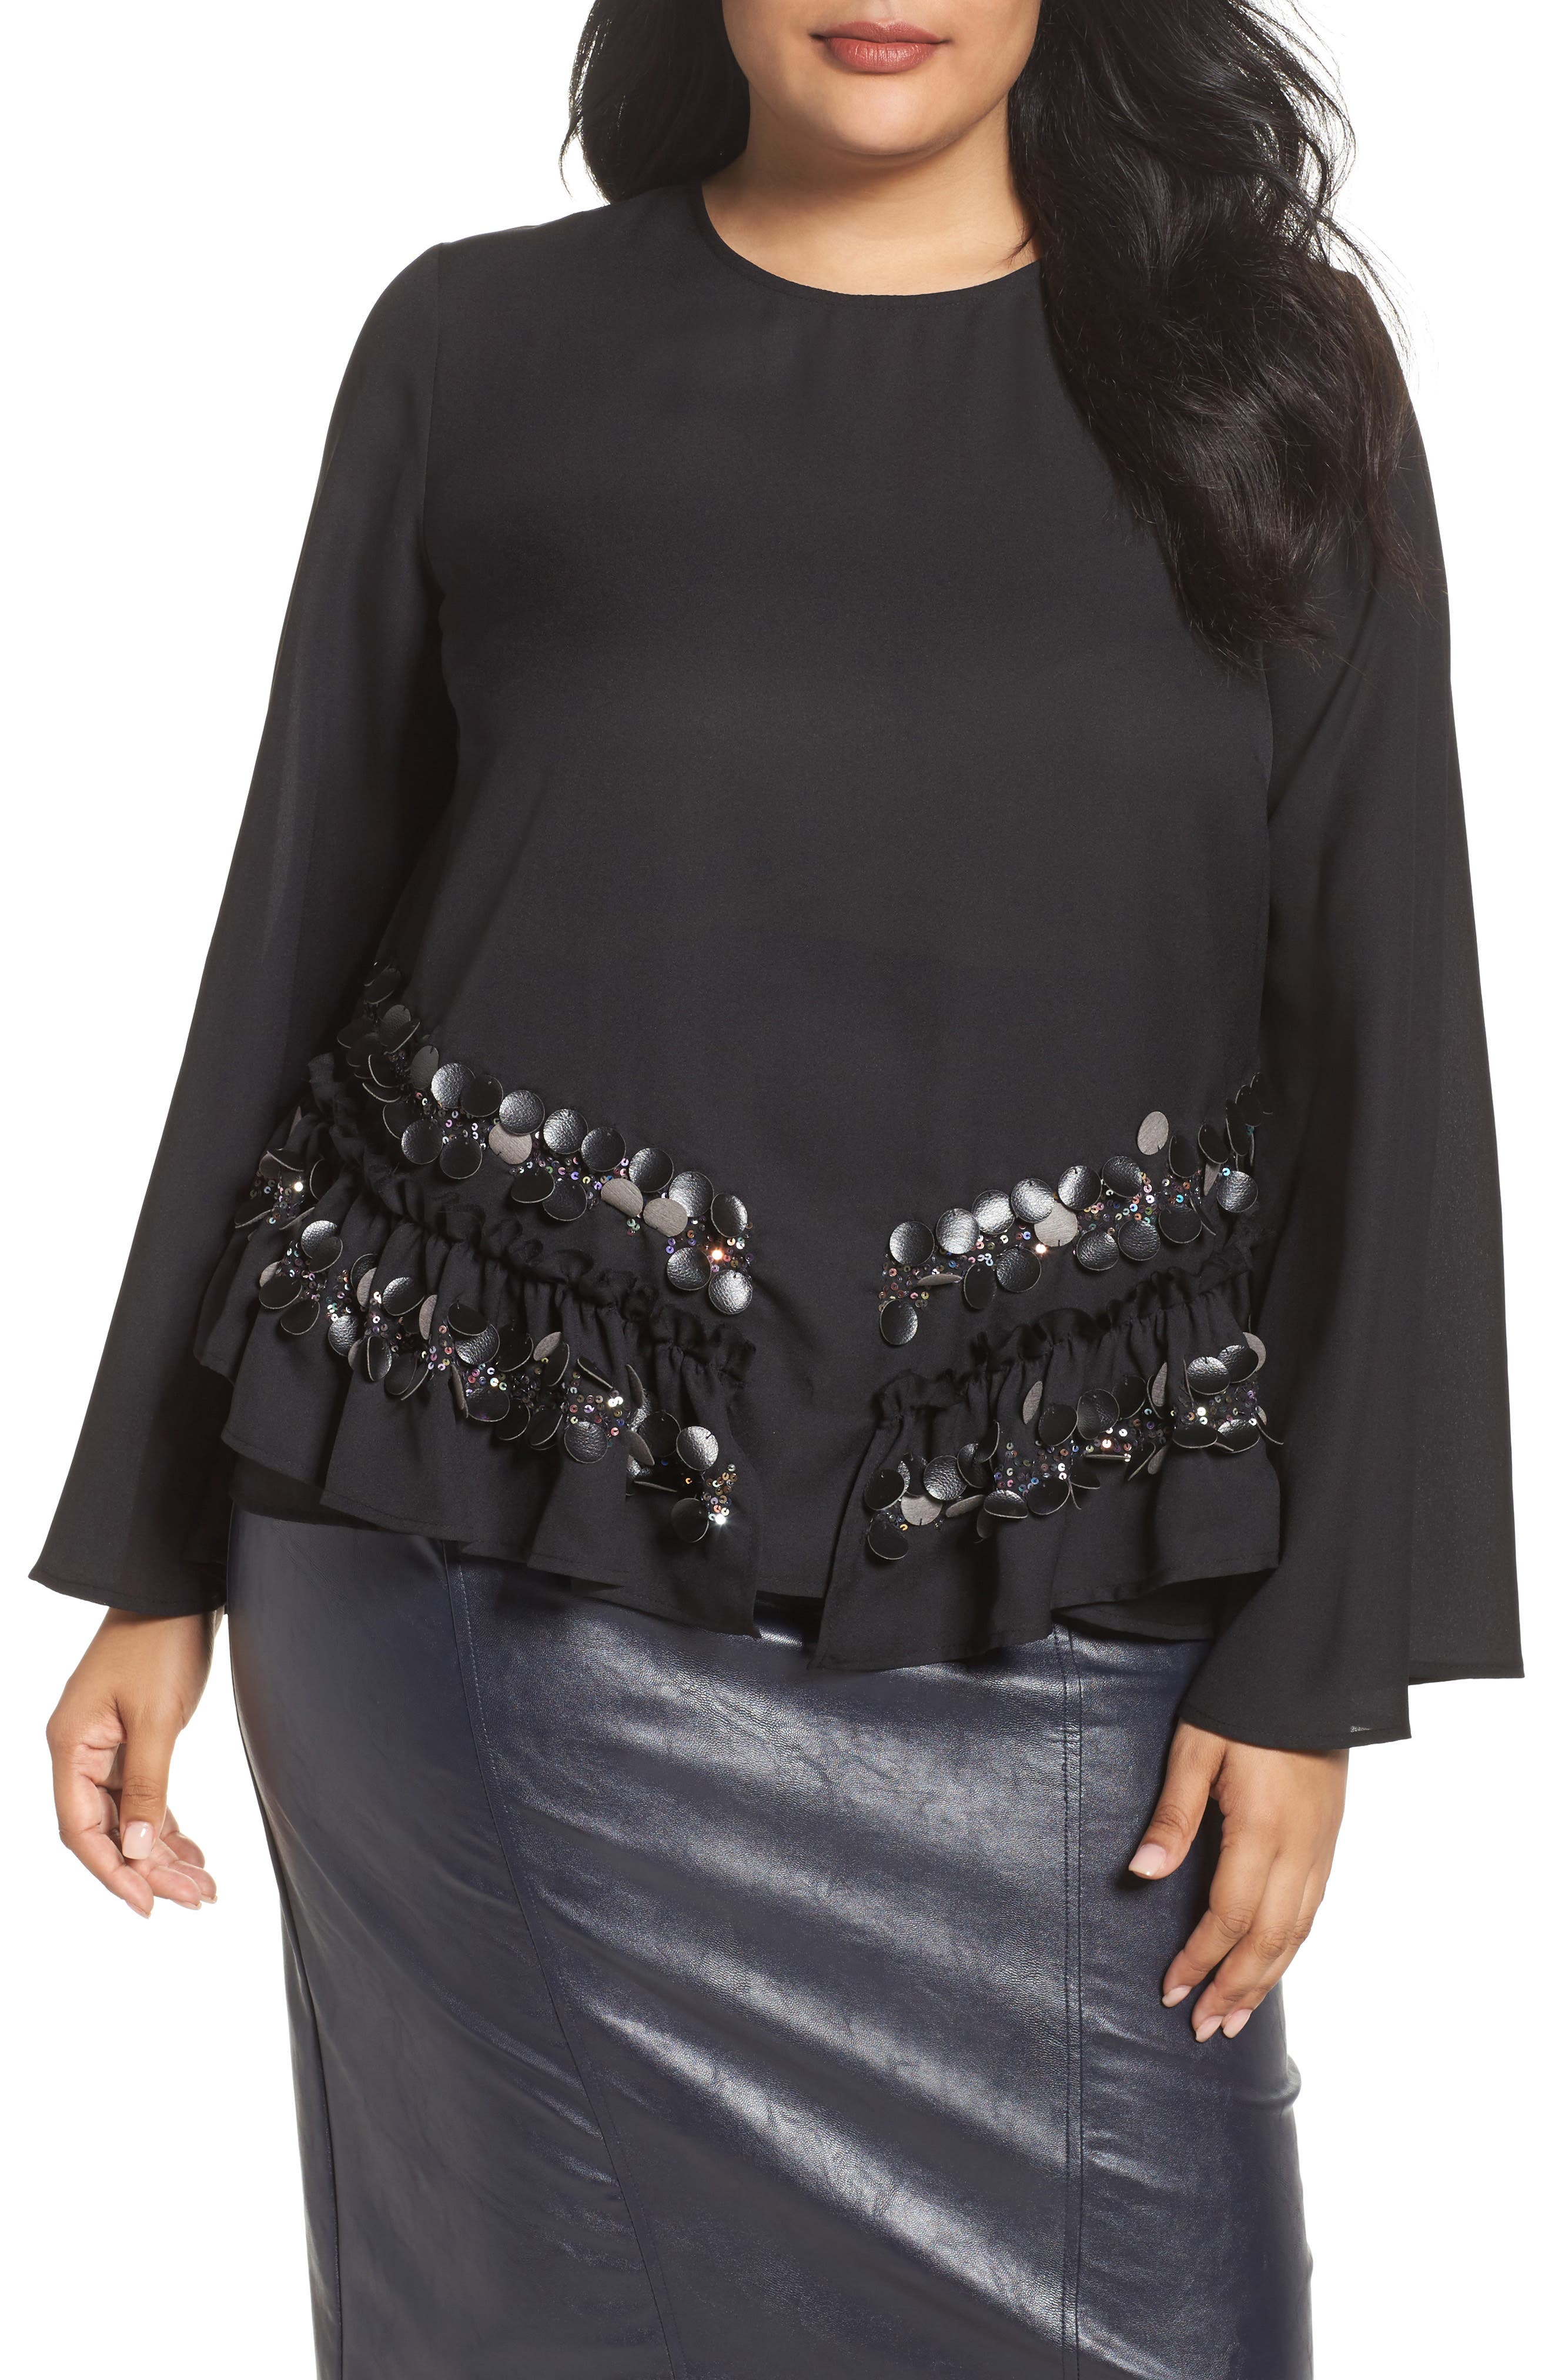 LOST INK Sequin Ruffle Swing Top (Plus Size)